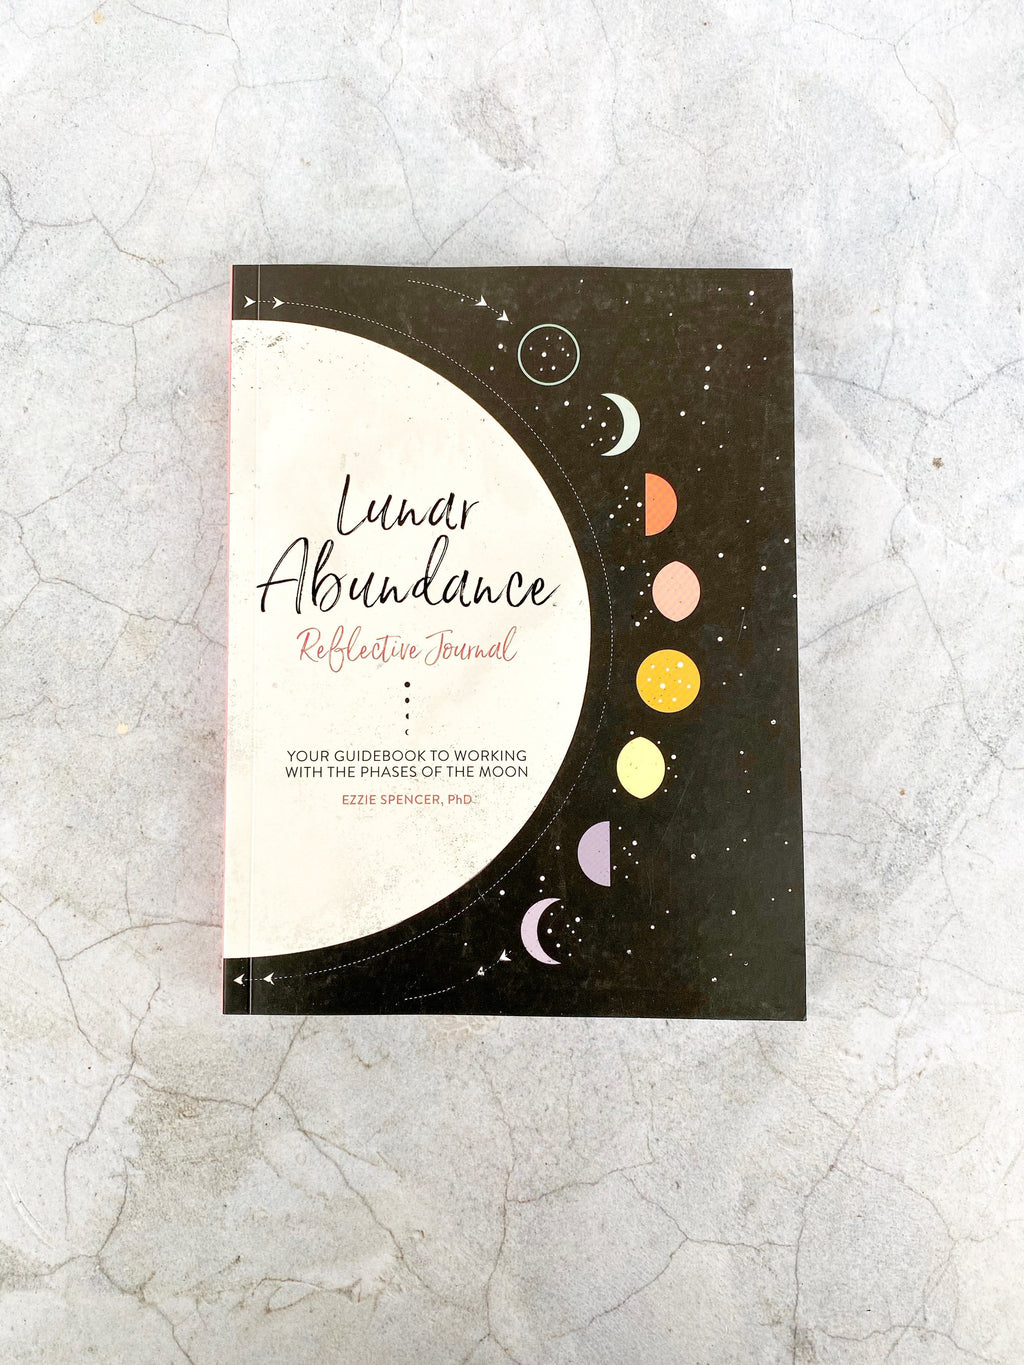 Lunar Abundance: Reflective Journal - Unearthed Crystals